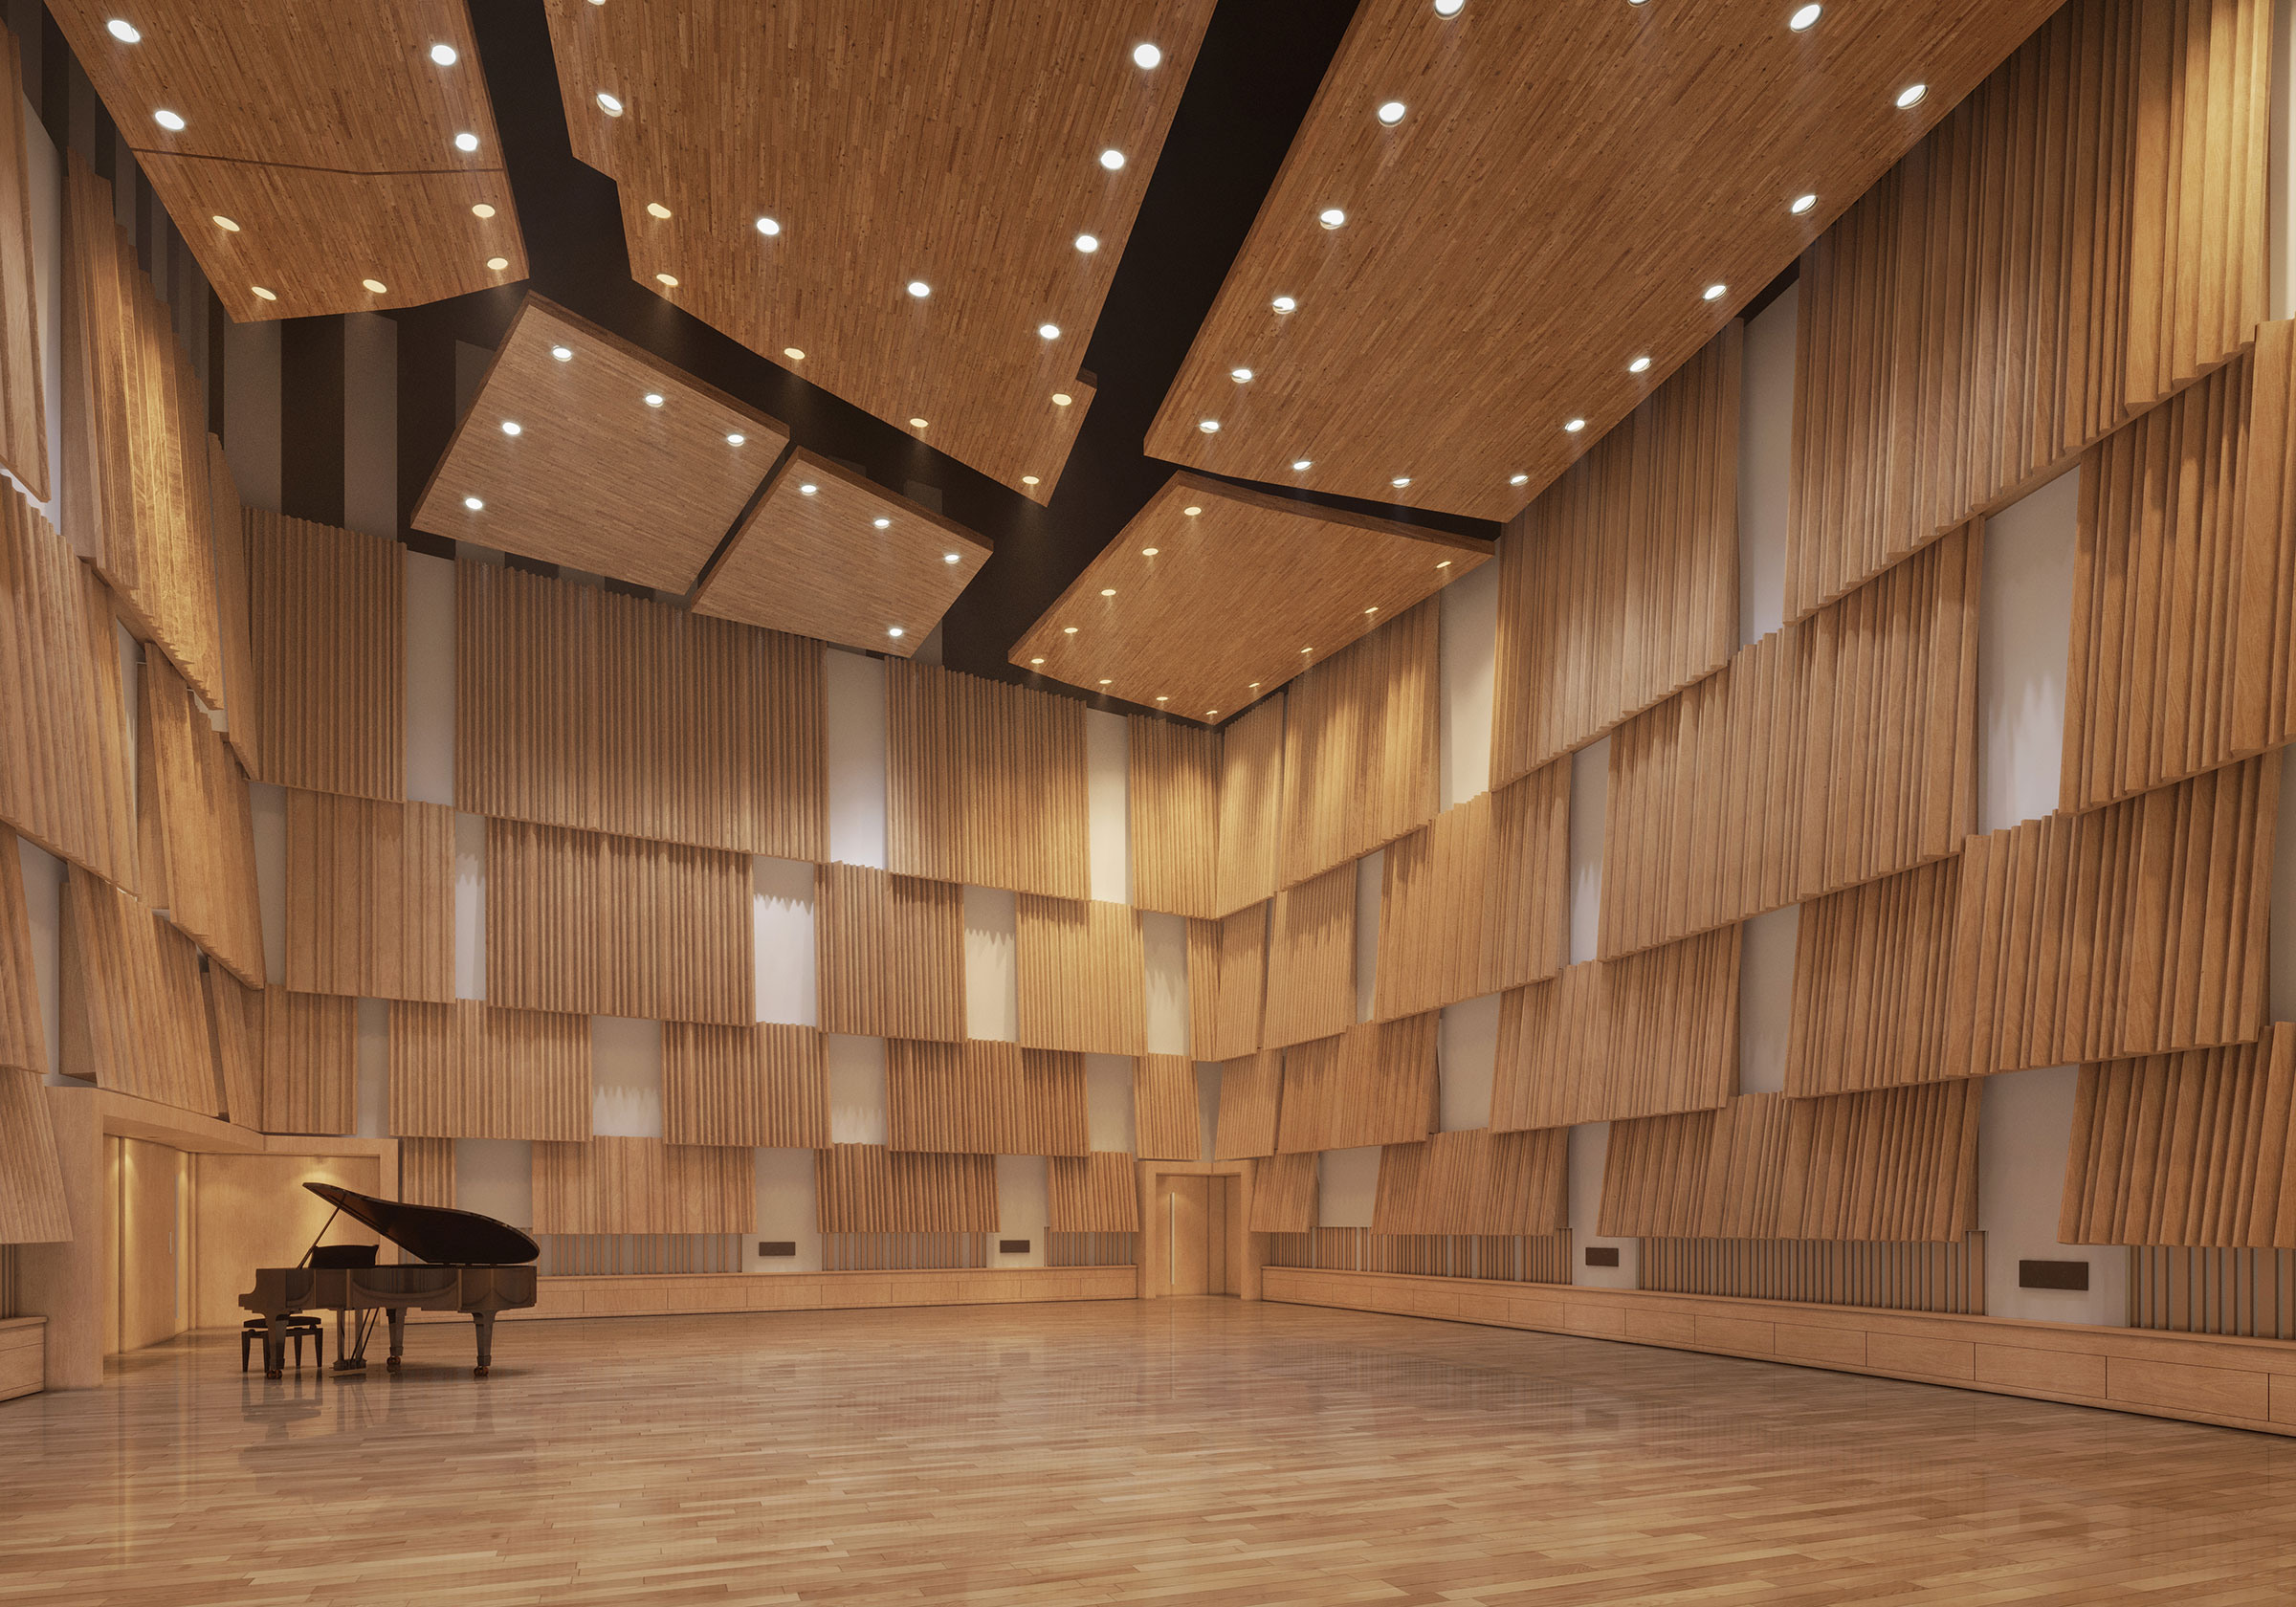 Perspective du studio 110 réalisée par LEMON SARL sur la base de l'avant-projet.<br />Issu de la fusion des anciens studios 110 et 111, le futur studio 110 sera dédié aux répétitions de l'Orchestre National de France, de l'Orchestre Philharmonique de Radio France, du Chœur et de la Maîtrise de Radio France.<br />© BUNKER PALACE / WSP / RADIO FRANCE